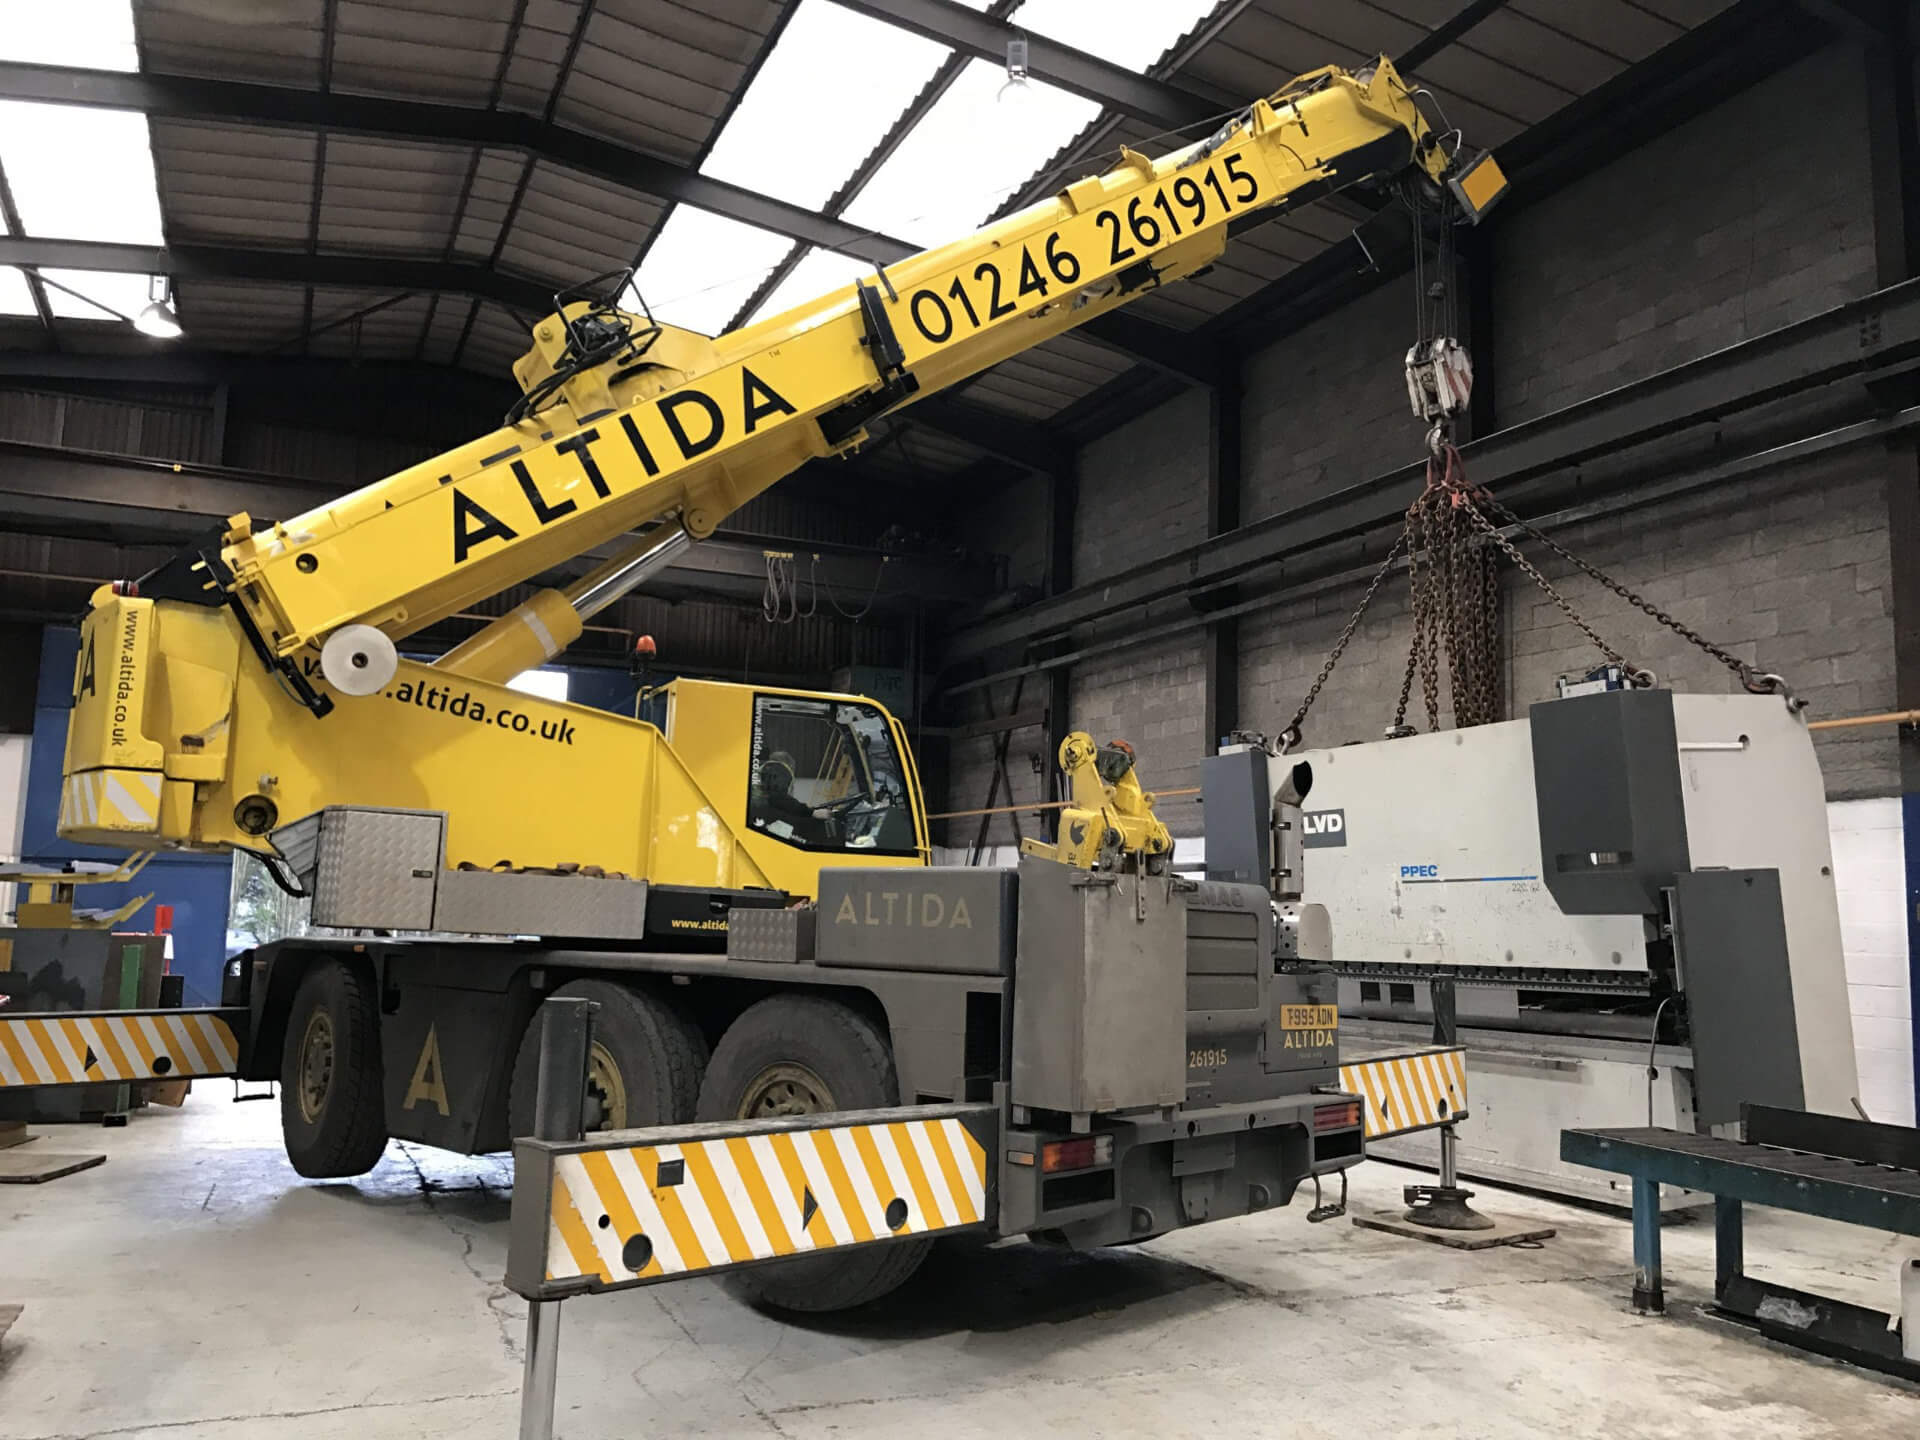 Mobile crane that has been maintained serviced tested and certified working.